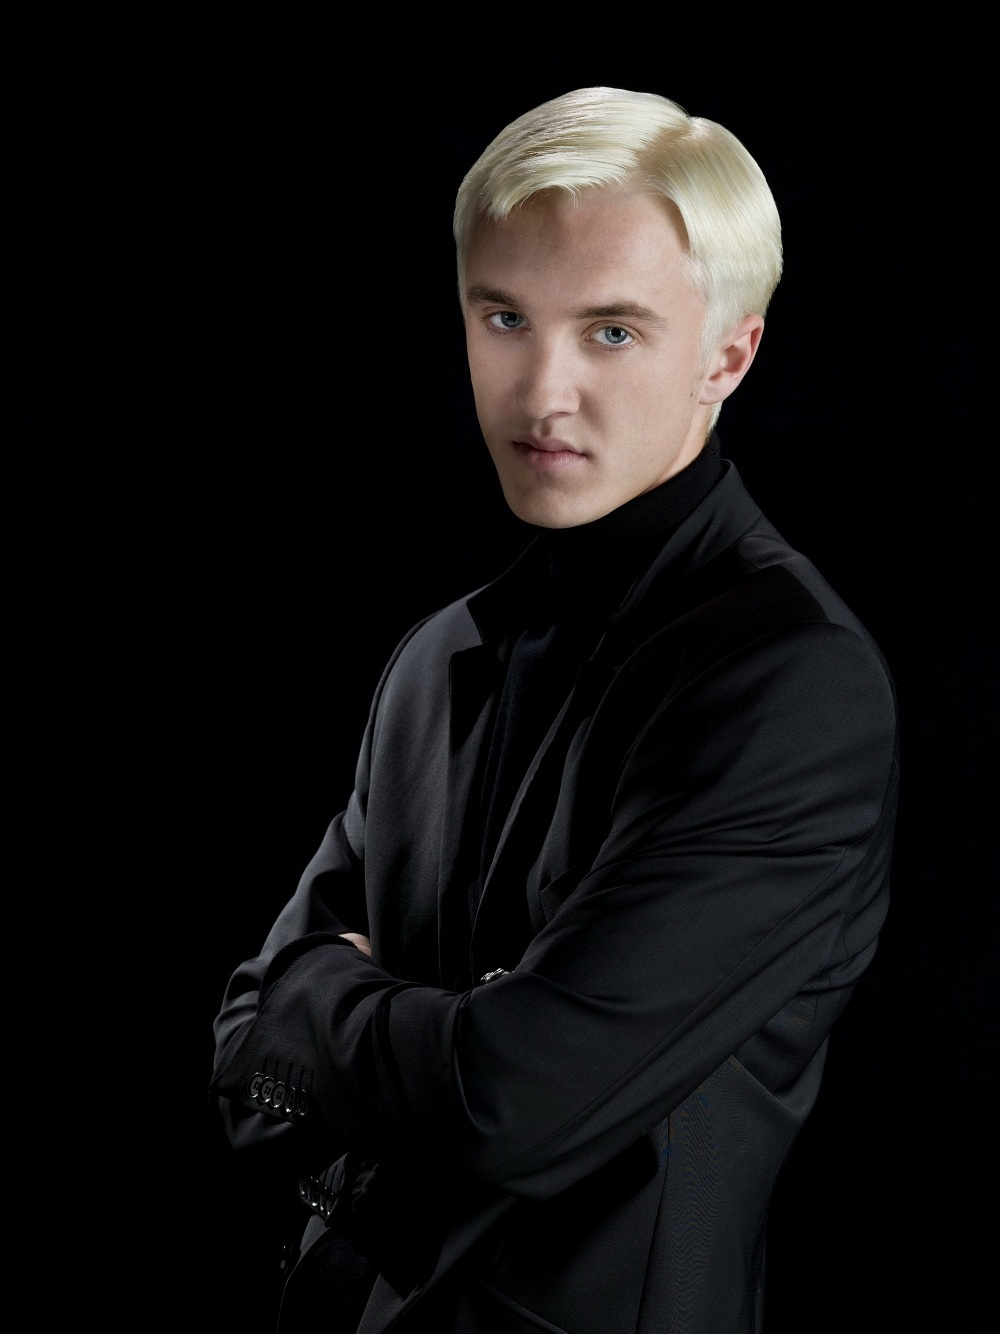 draco malfoy italian harry potter wiki. Black Bedroom Furniture Sets. Home Design Ideas